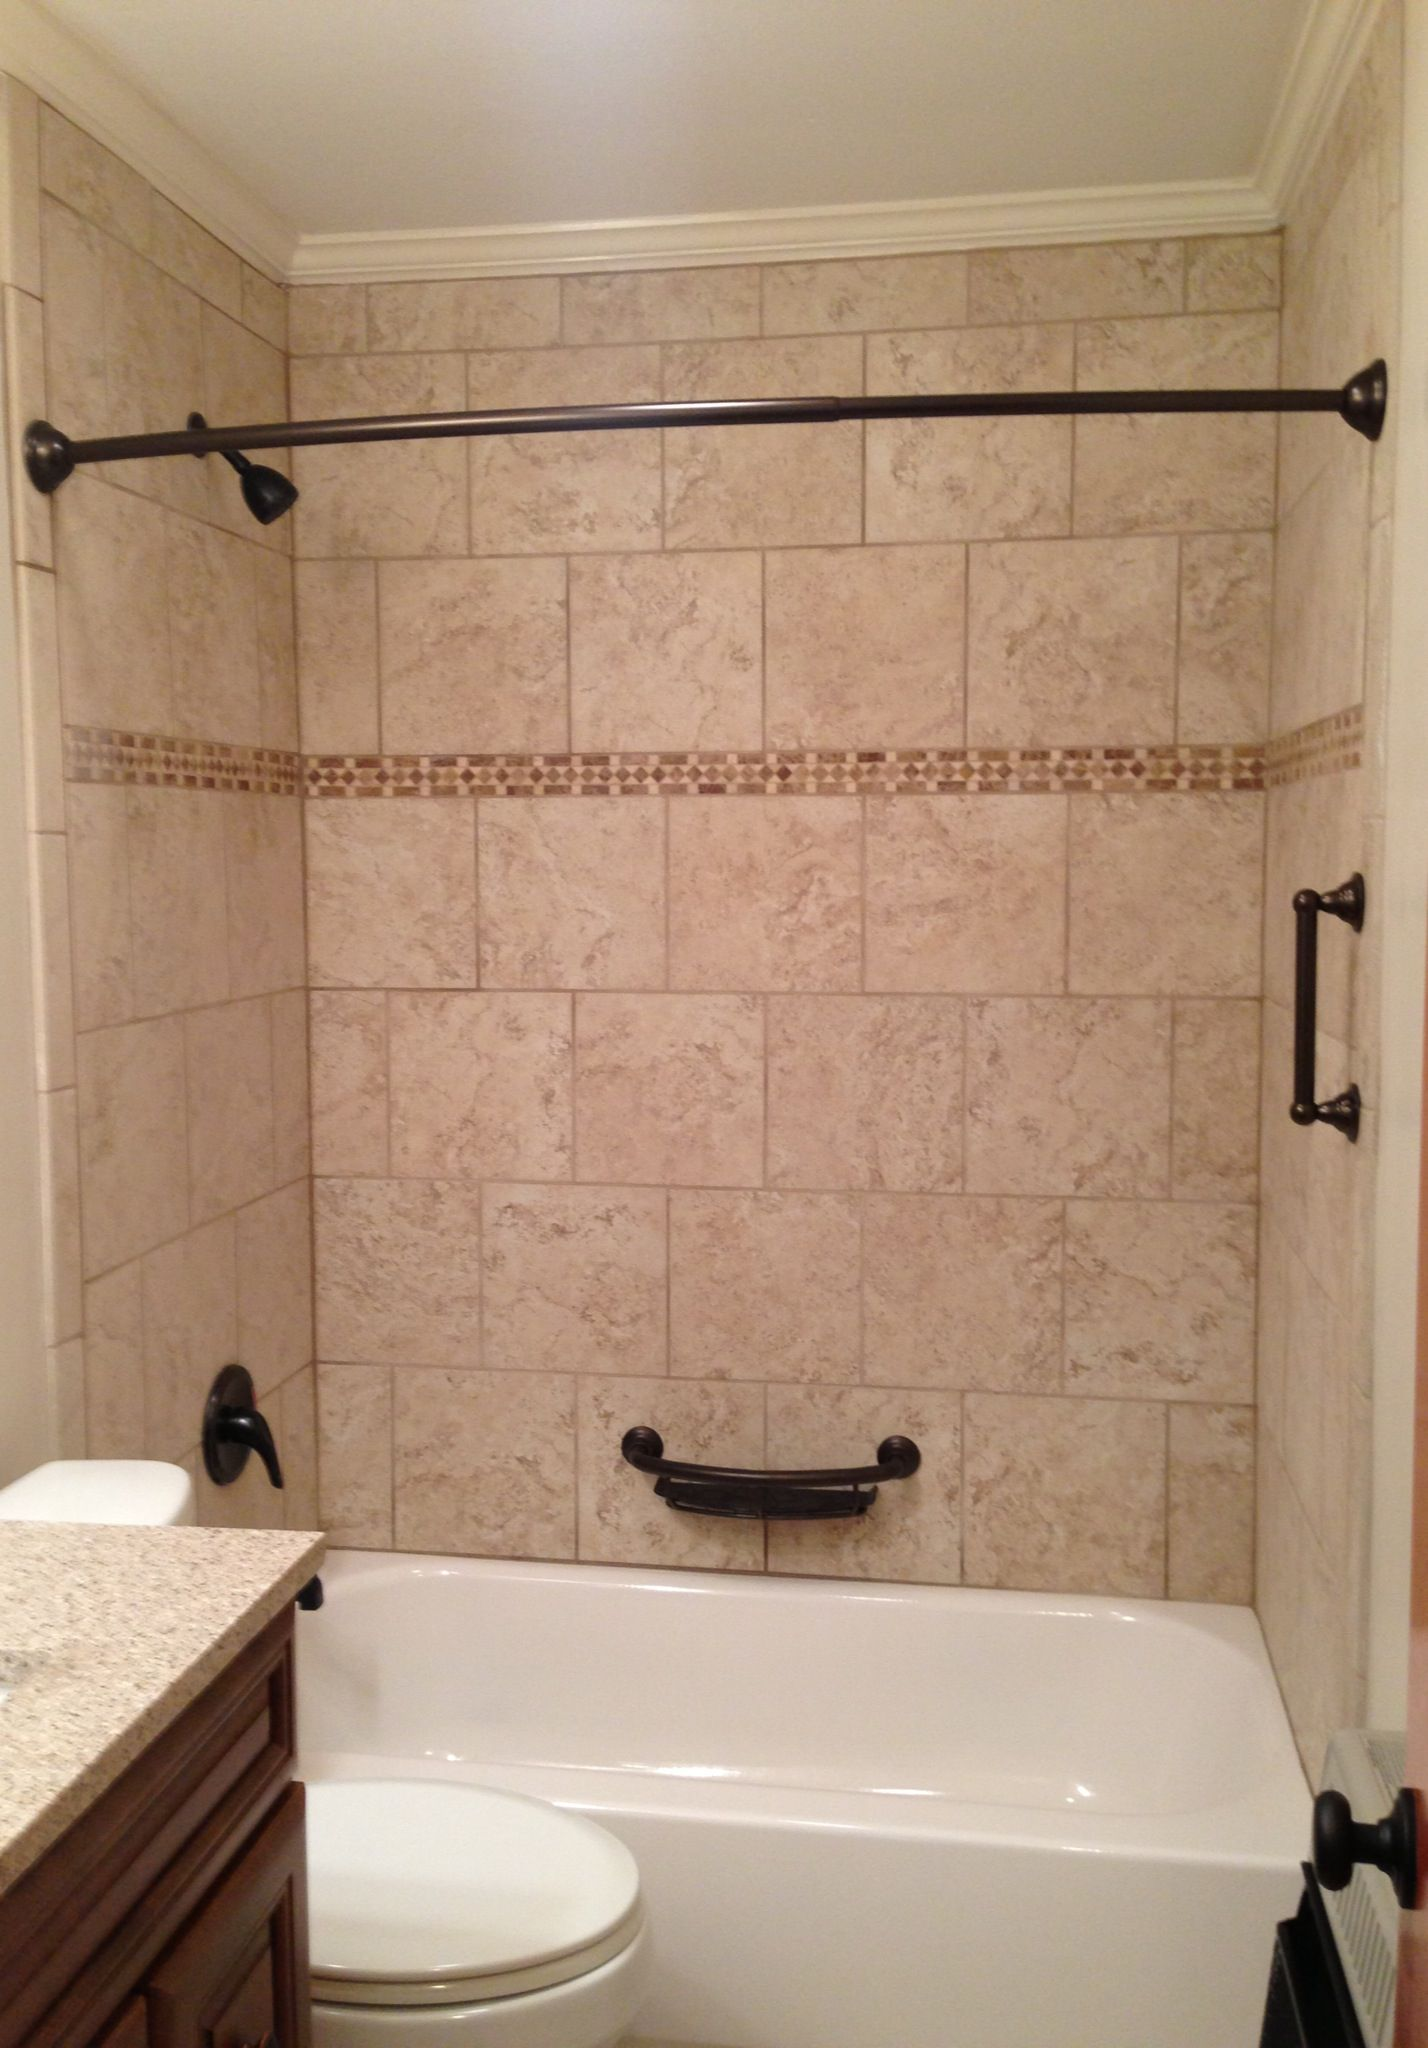 Tile Tub Surround Beige Bathtub With Oil Rubbed Bronze Fixtures